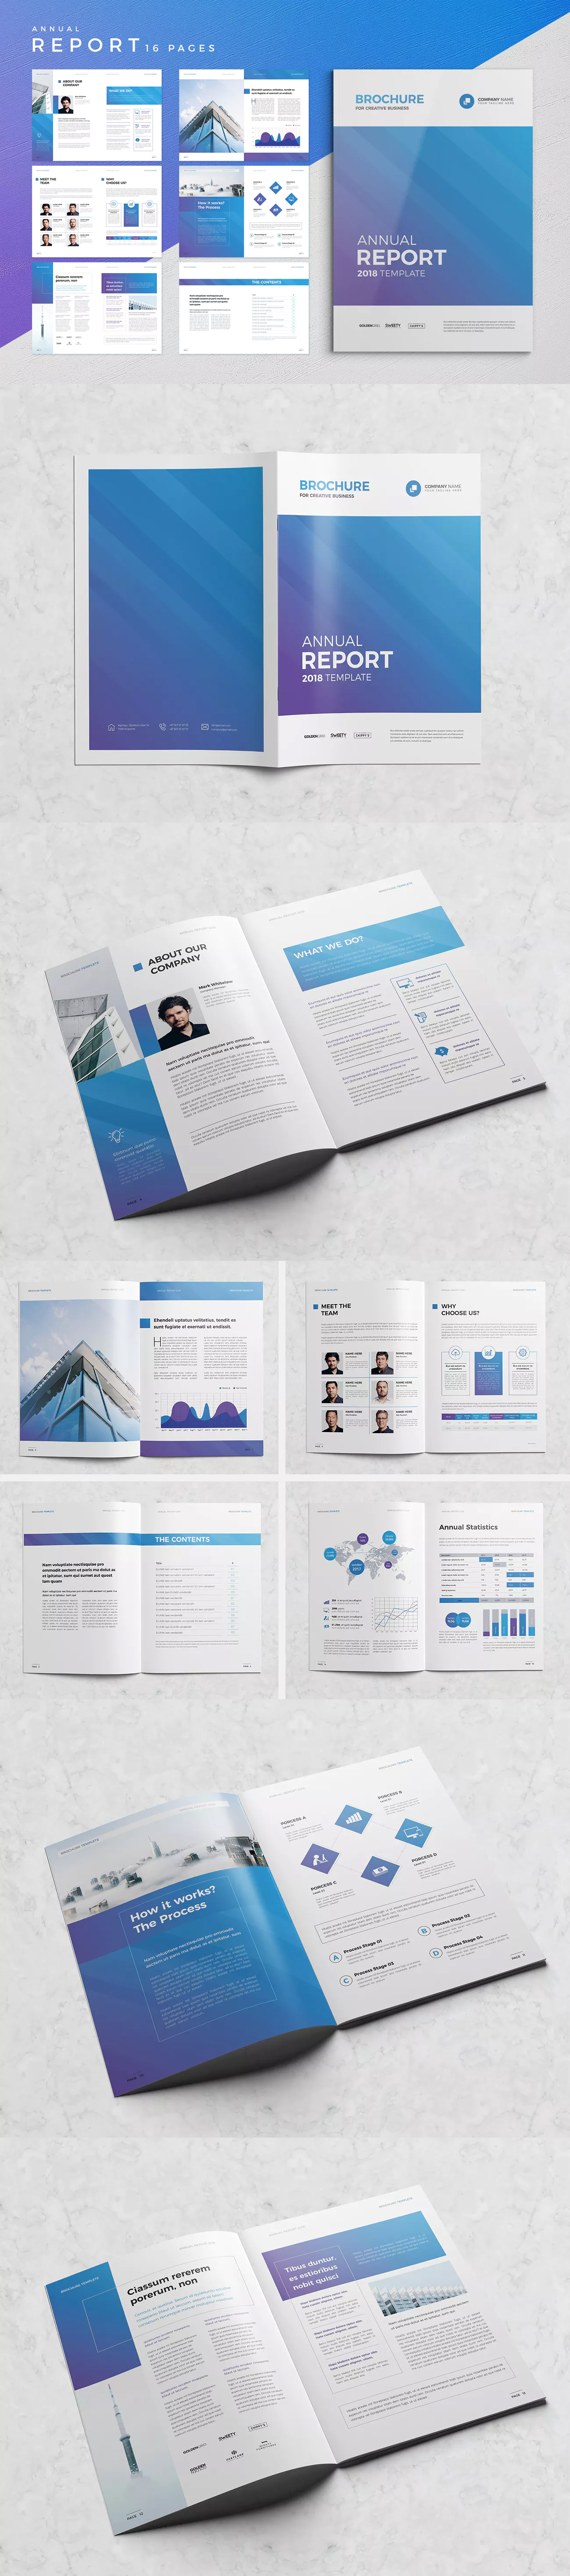 Clean Annual Report Template InDesign INDD A4   Annual Report ...